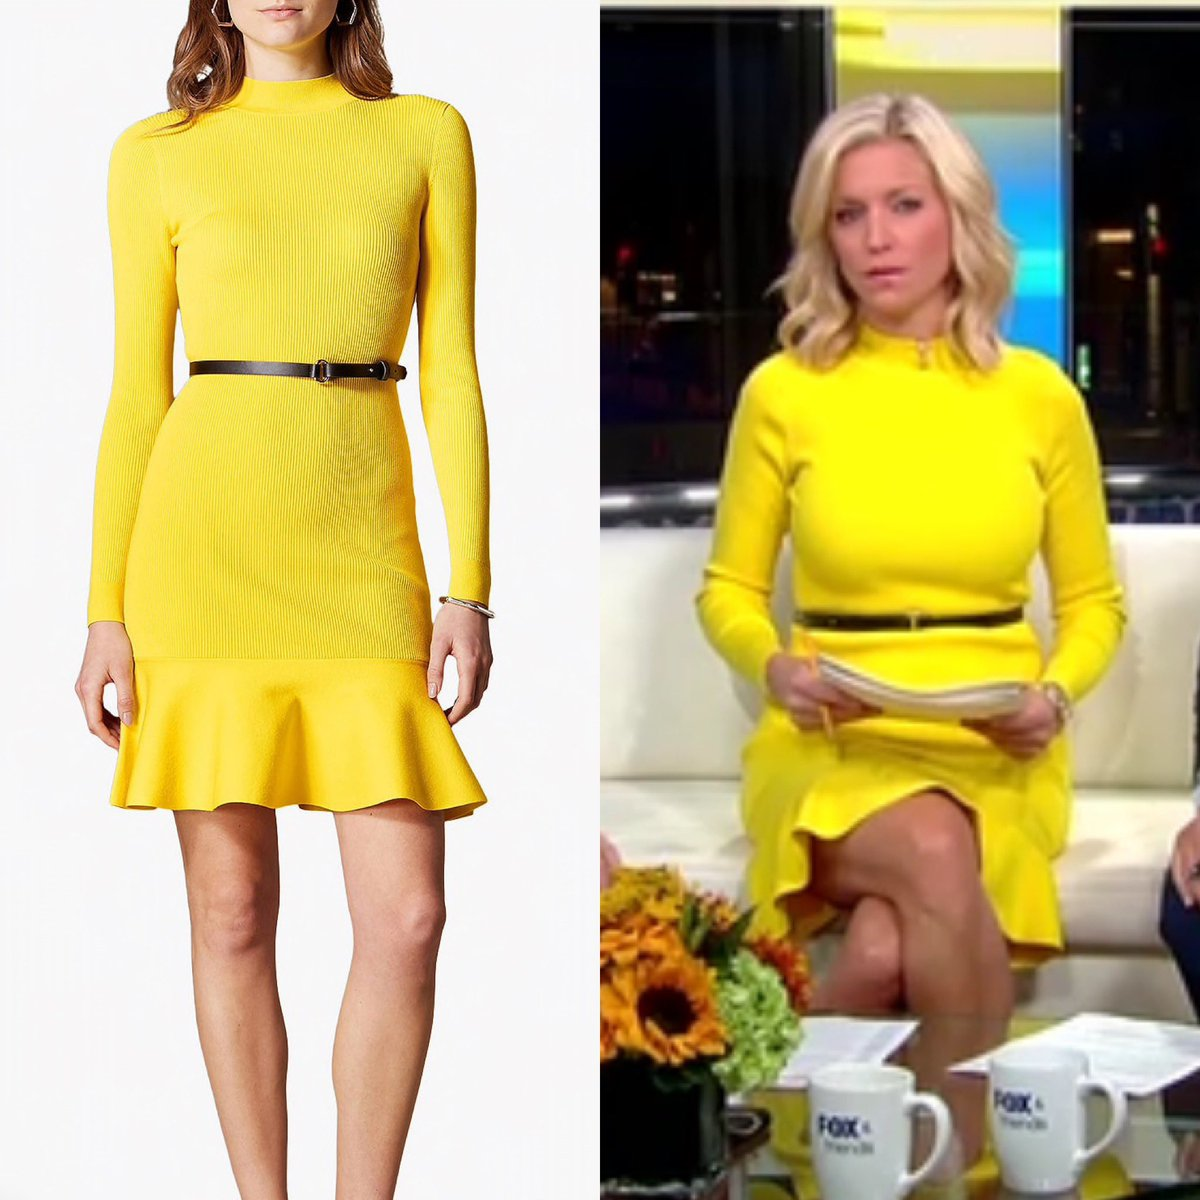 Ainsley Earhardt (@ainsleyearhardt) wore a Karen Millen Yellow Ribbed Knit Peplum Hem dress today on #FoxandFriends - the dress is no longer sold.  #foxnews #foxnewsfashion #ainsleyearhardt https://www.instagram.com/p/B3-xHOmggiN/?igshid=3fvyrltmqvej …pic.twitter.com/qdwvcg0uPg